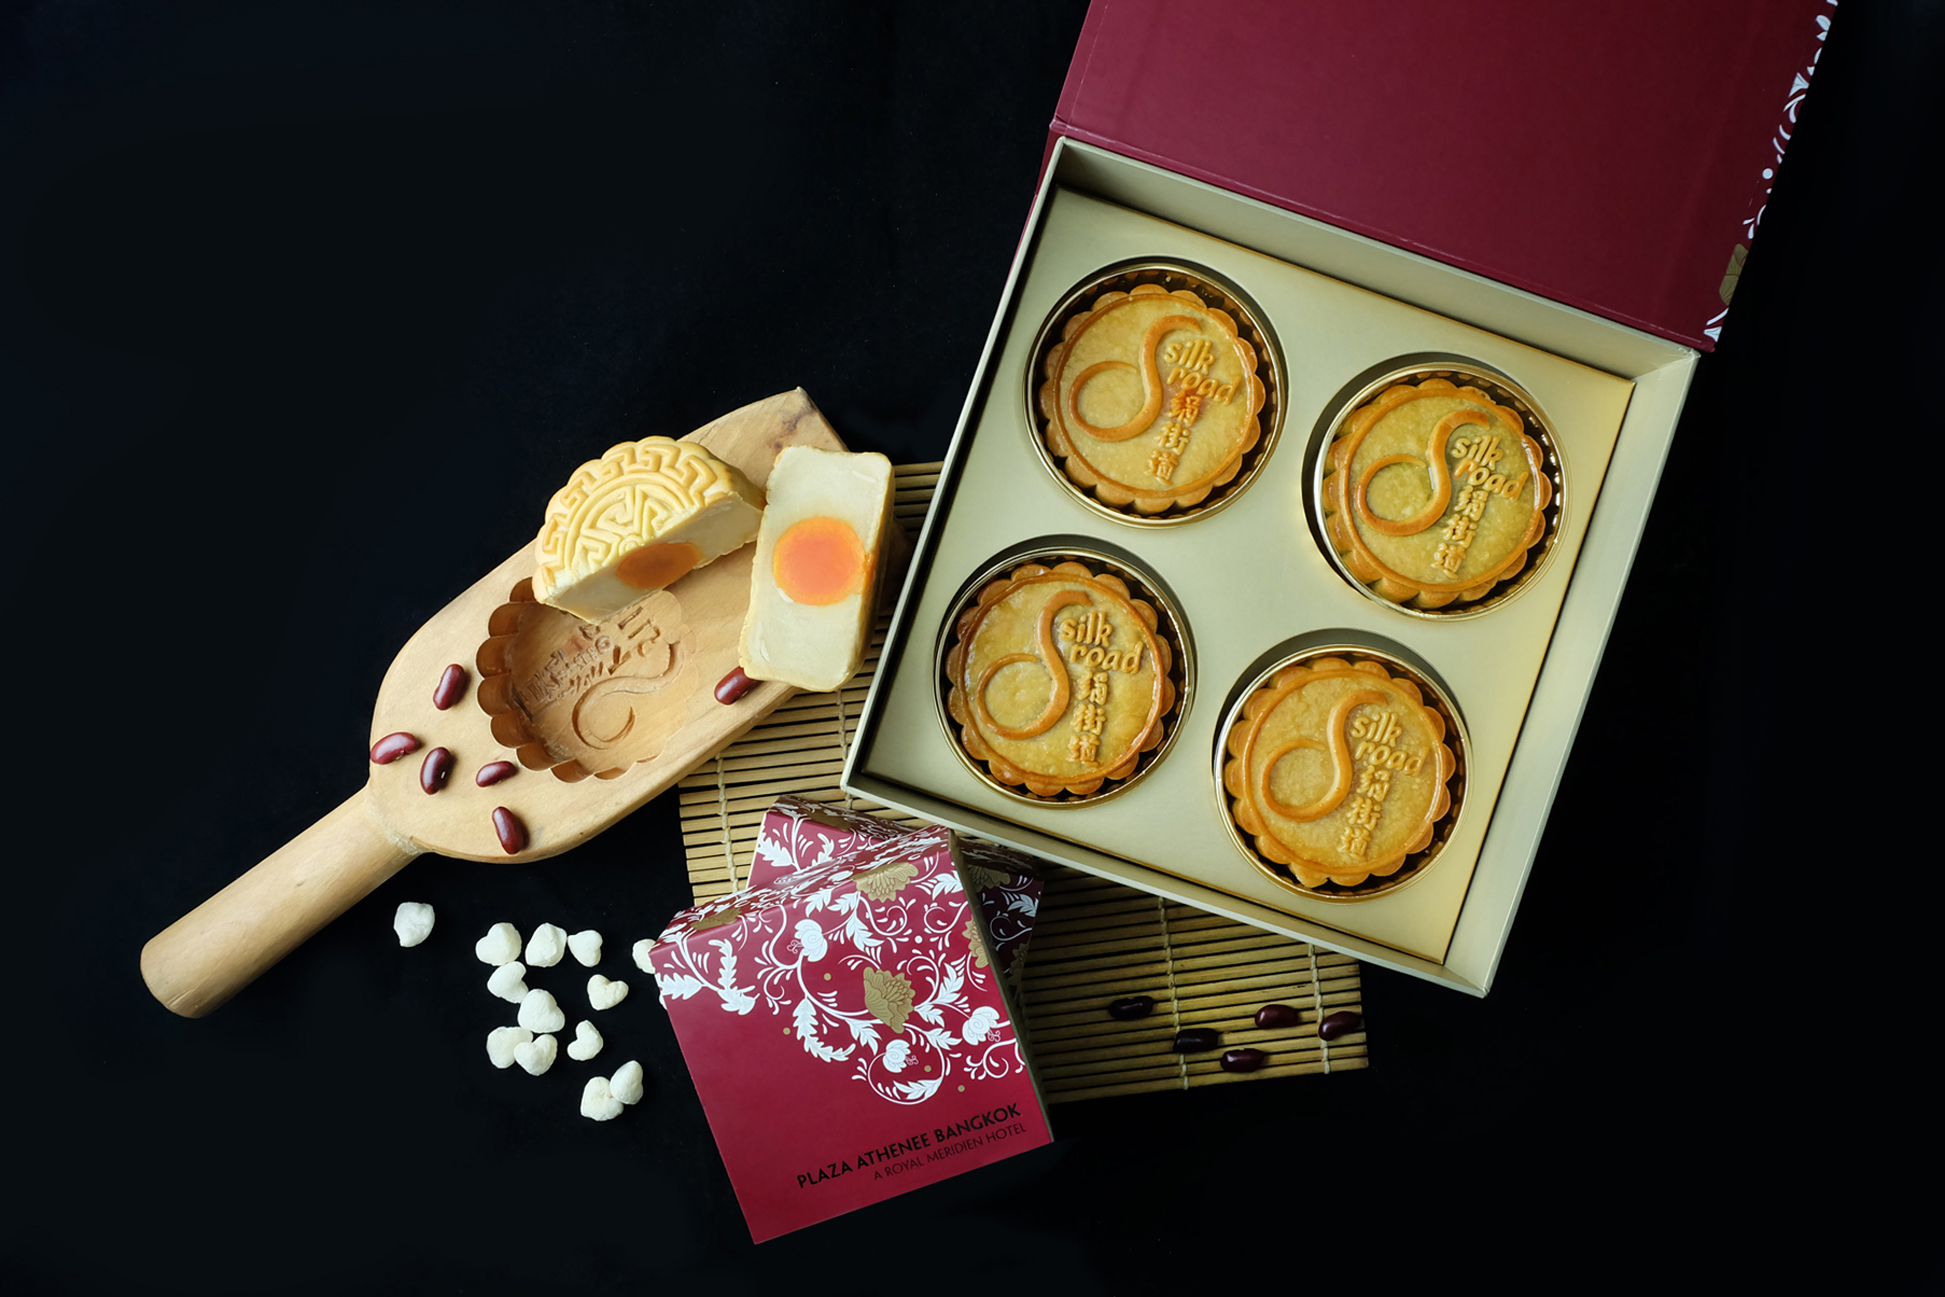 02.Original Box of 4 Pieces_Matchless Mooncakes_Plaza Athenee Bangkok, A Royal Meridien